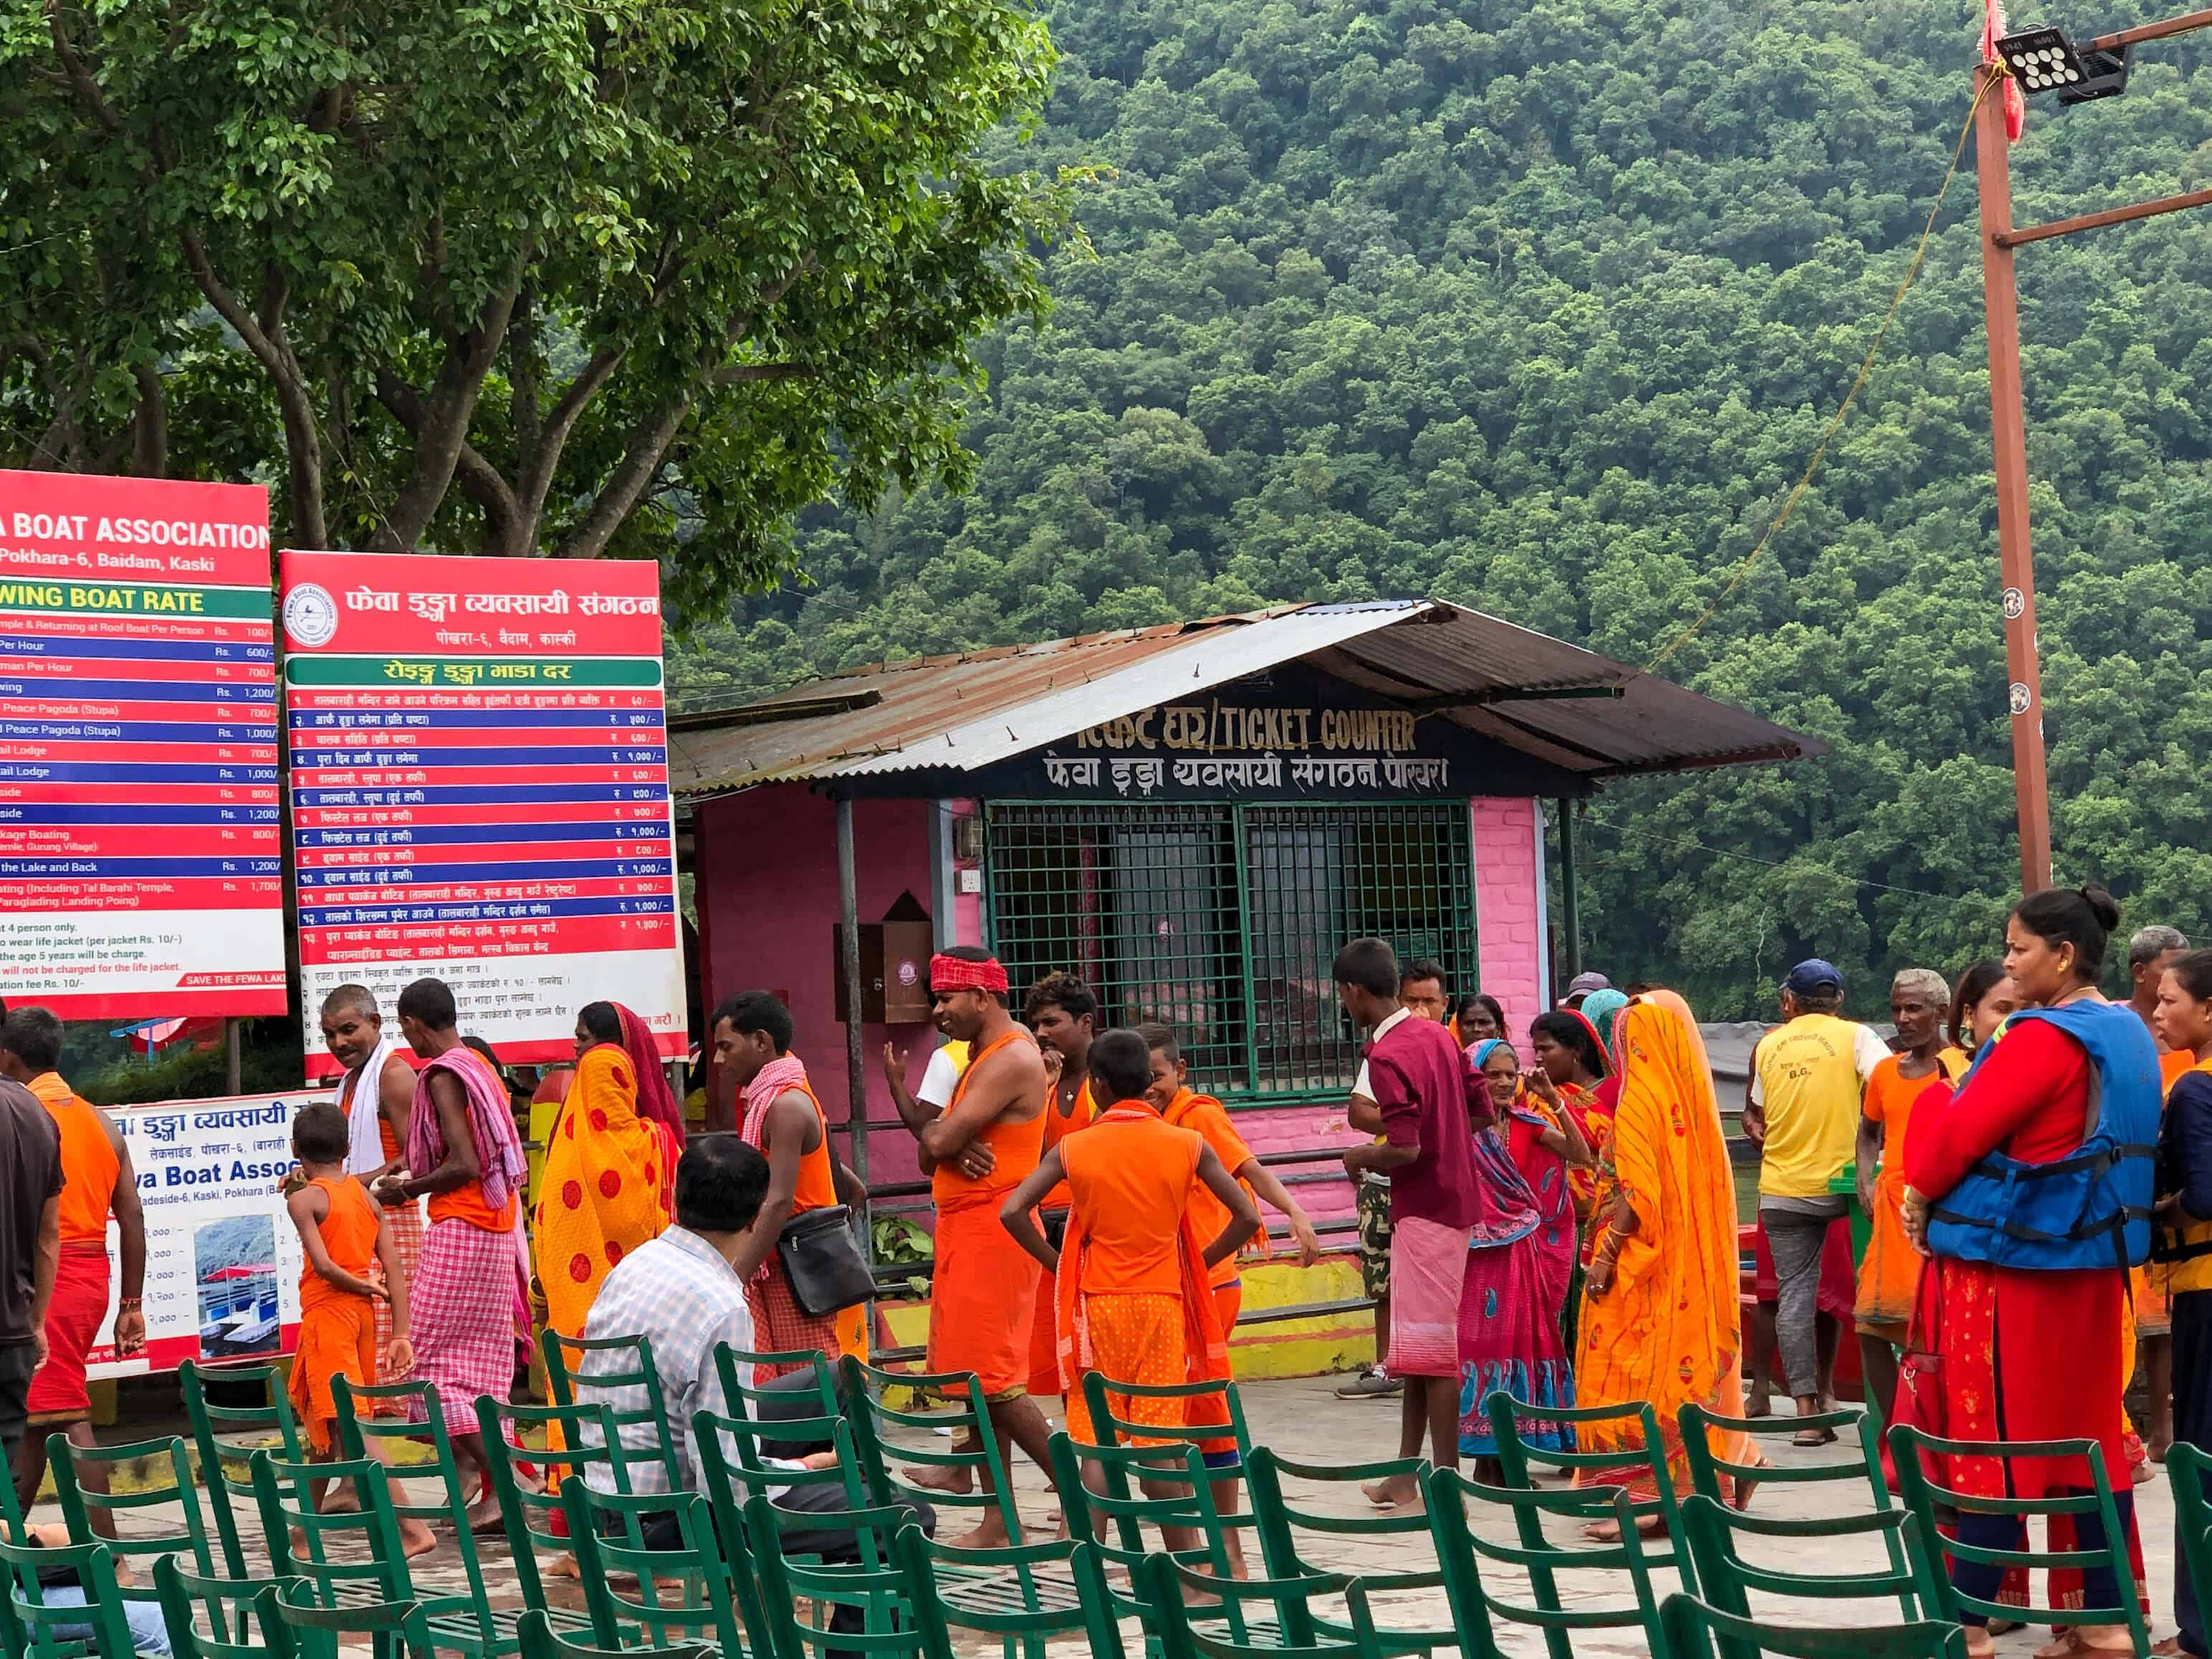 Locals attending a festival in Pokhara